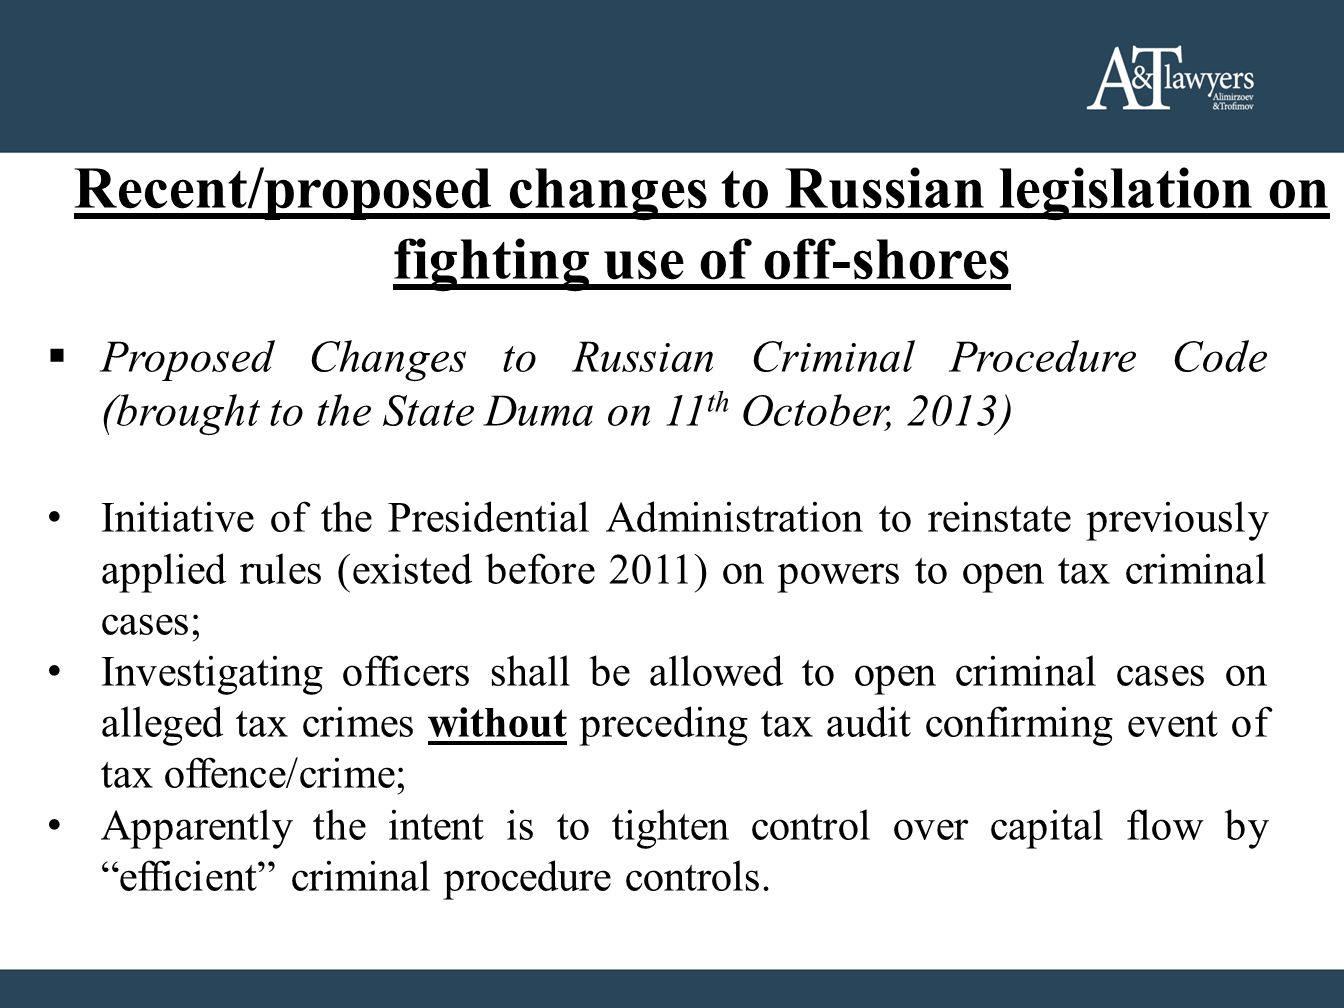 Recent/proposed changes to Russian legislation on fighting use of off-shores  Proposed Changes to Russian Criminal Procedure Code (brought to the State Duma on 11 th October, 2013) Initiative of the Presidential Administration to reinstate previously applied rules (existed before 2011) on powers to open tax criminal cases; Investigating officers shall be allowed to open criminal cases on alleged tax crimes without preceding tax audit confirming event of tax offence/crime; Apparently the intent is to tighten control over capital flow by efficient criminal procedure controls.